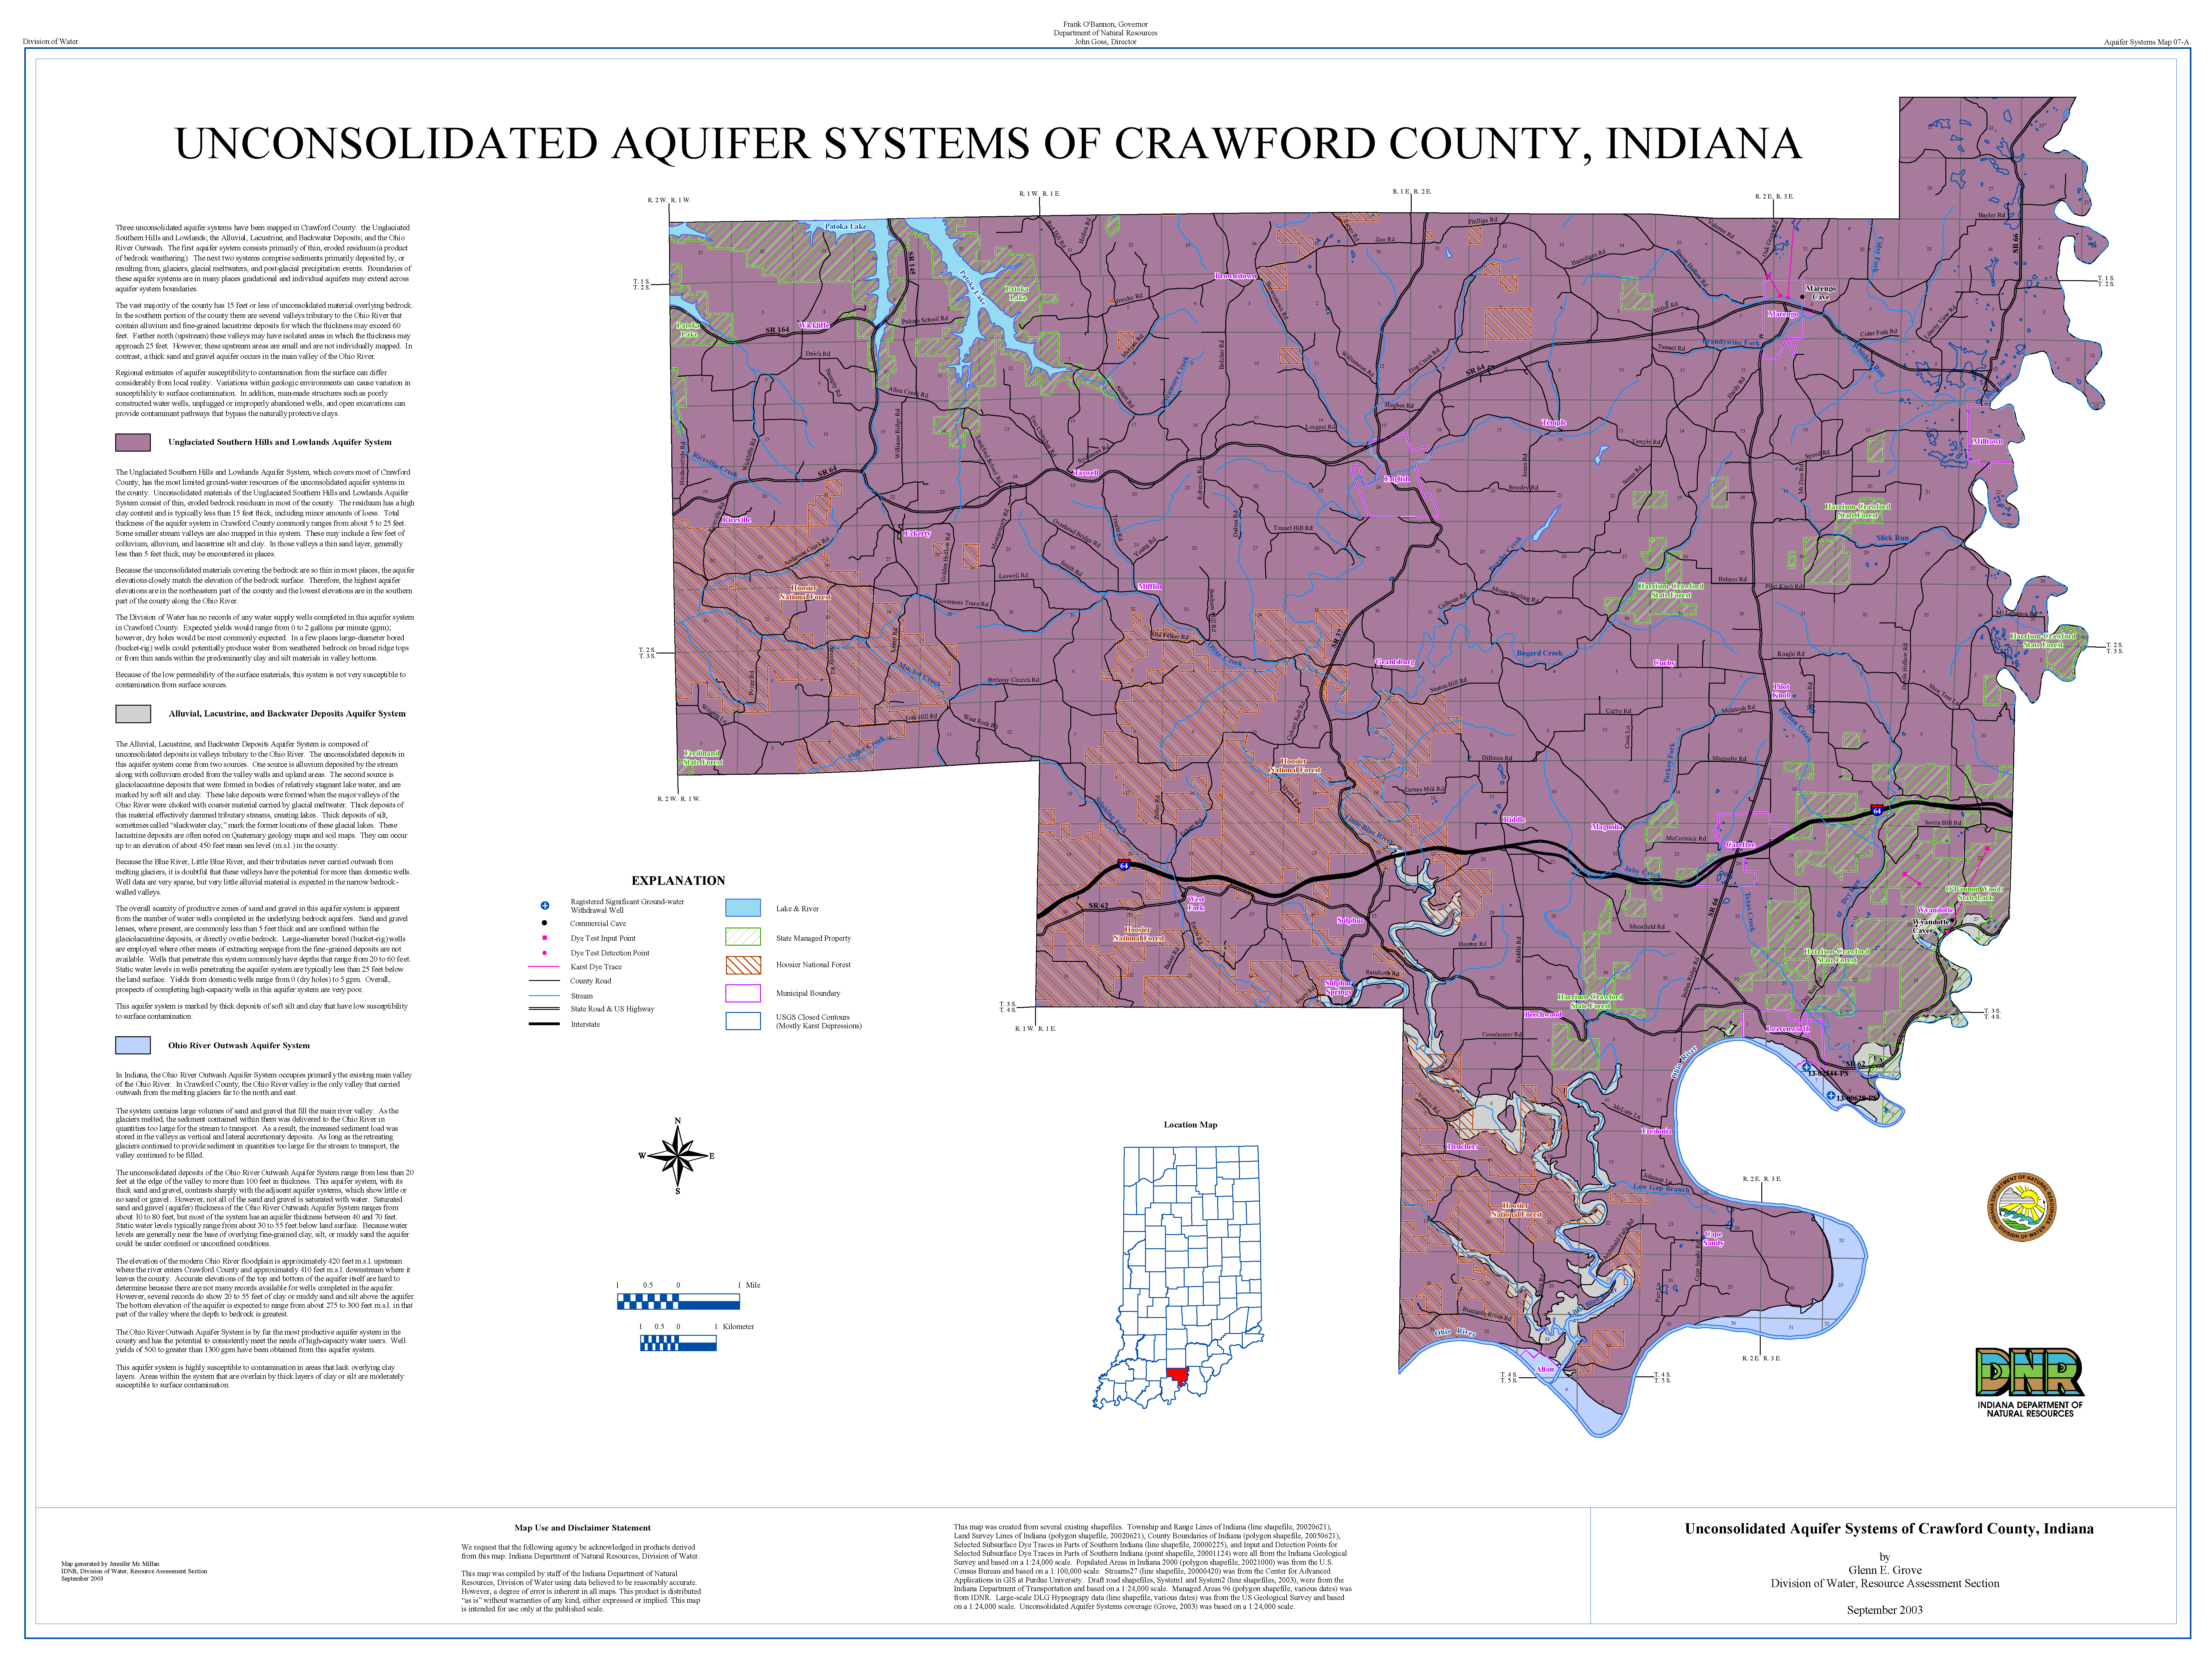 DNR: Aquifer Systems Maps 07 A and 07 B: Unconsolidated and